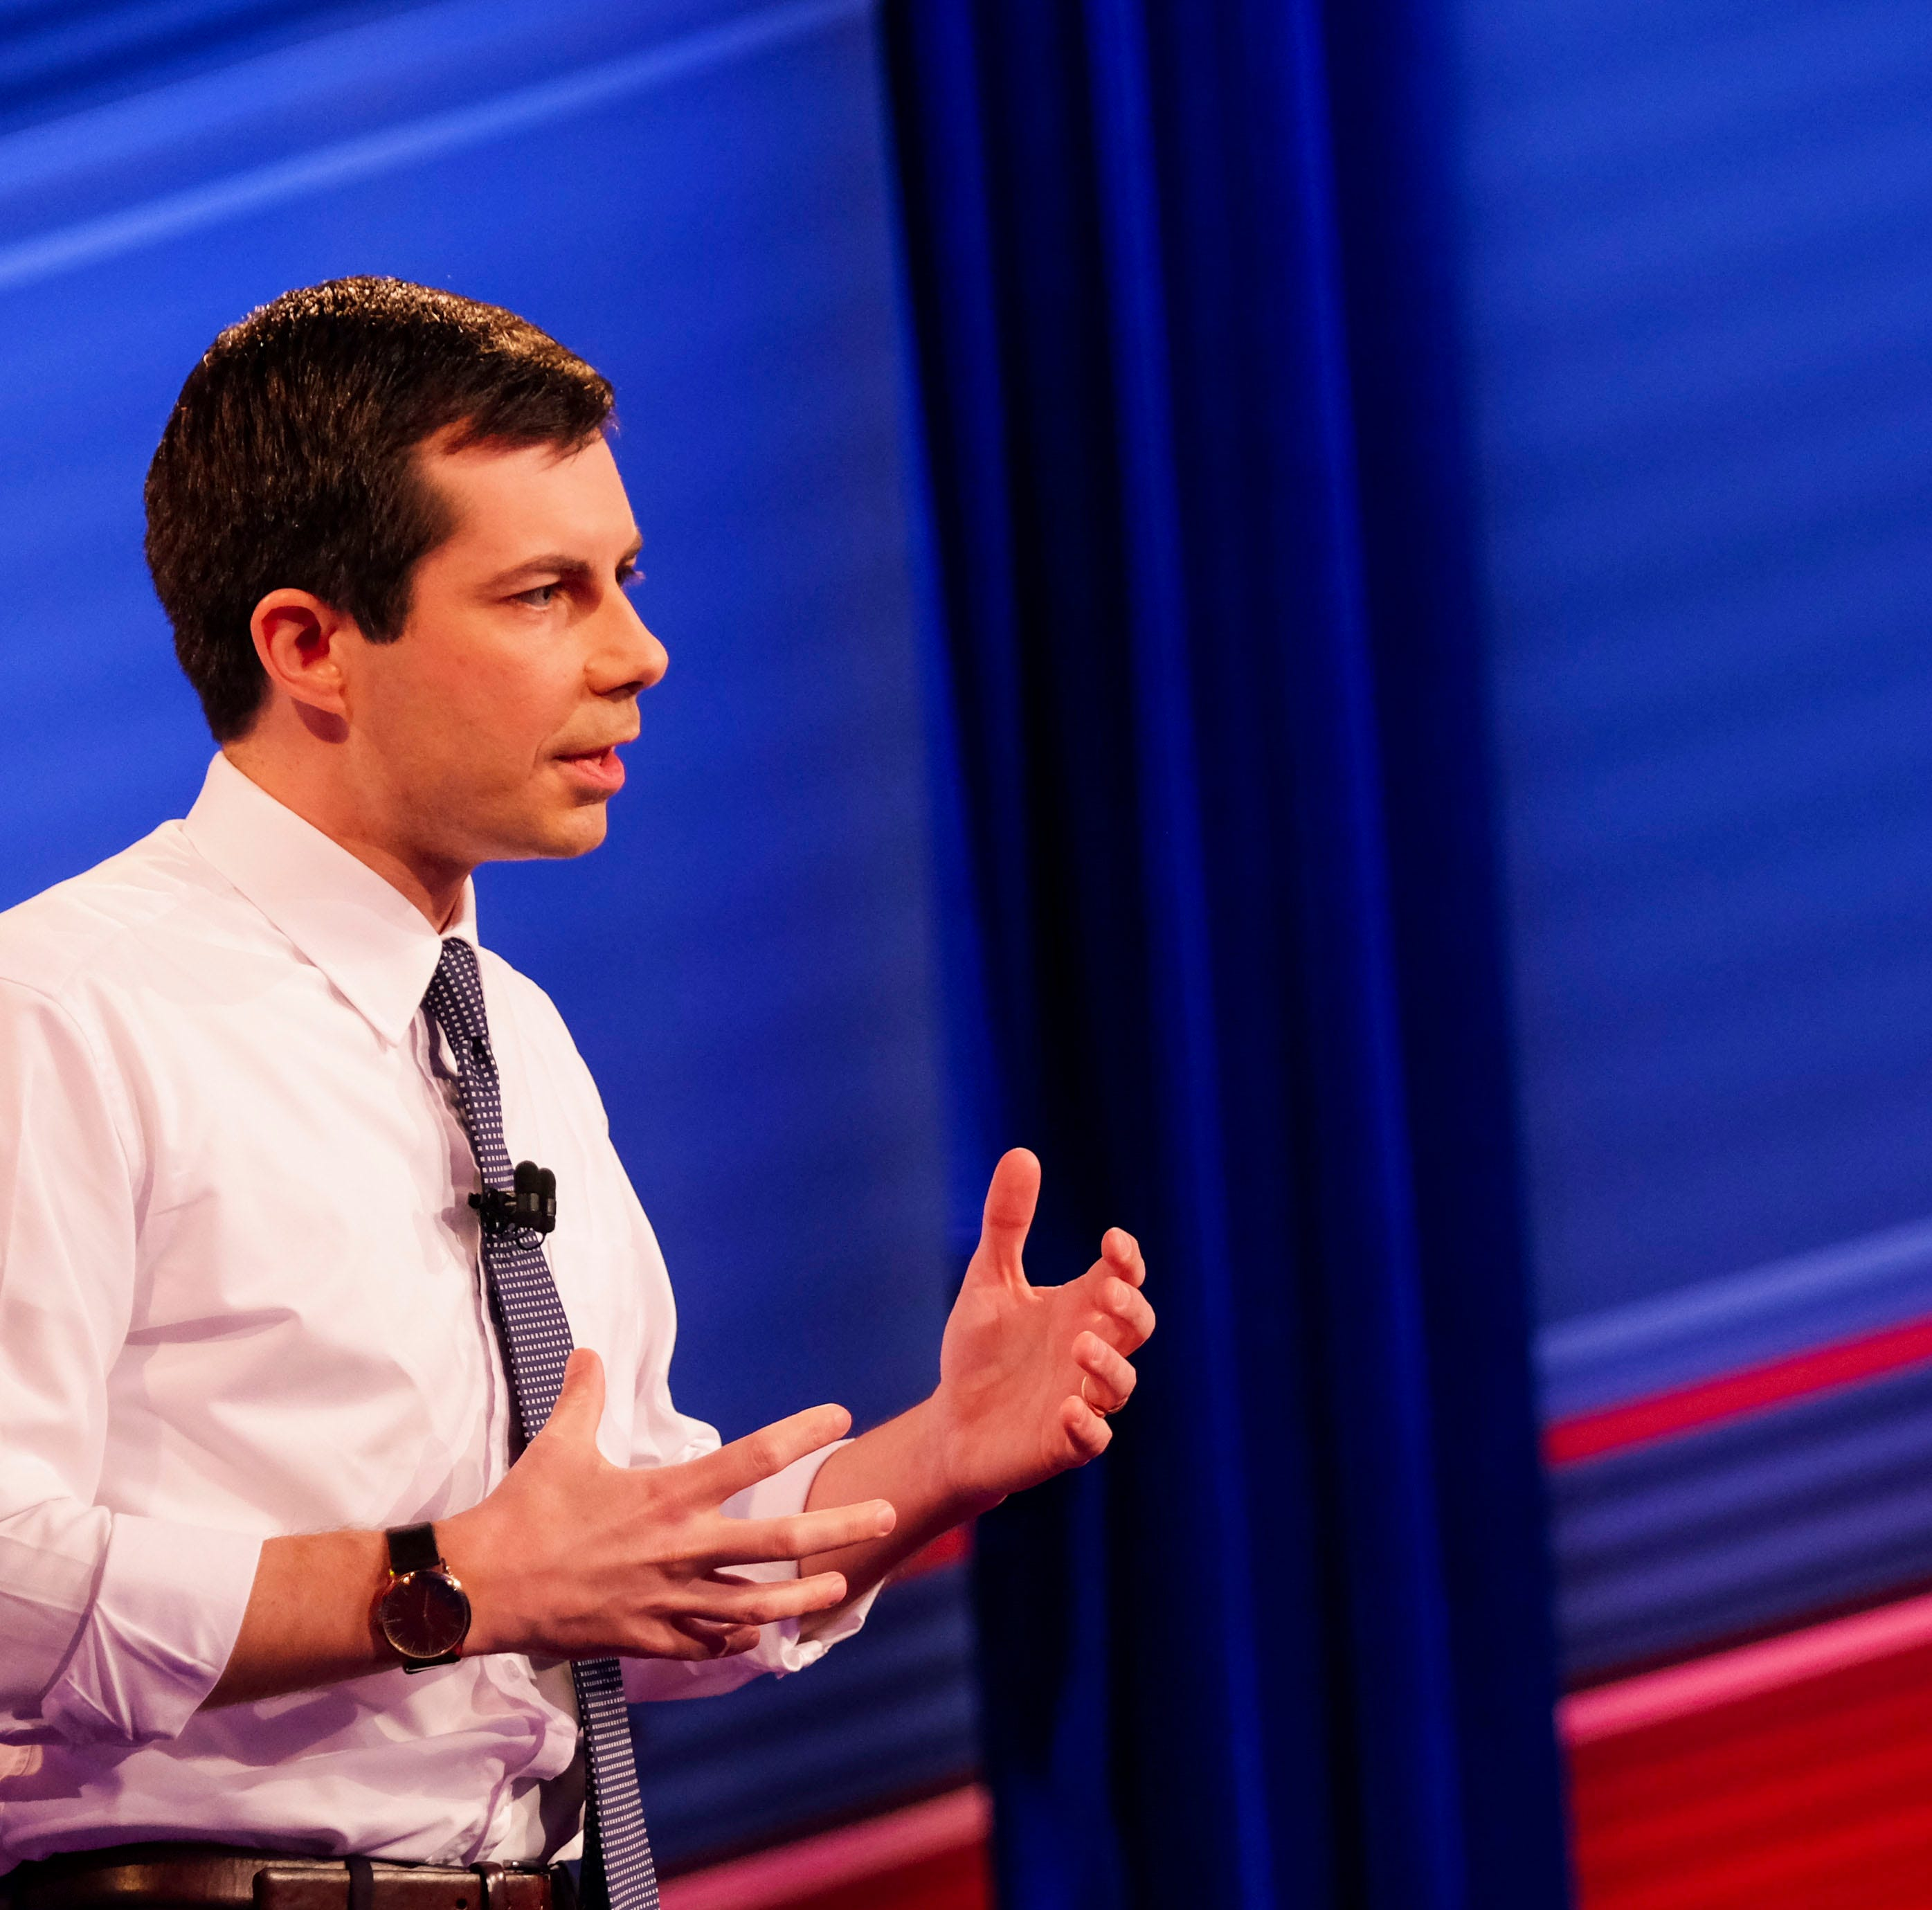 Oprah gives Pete Buttigieg a new name while weighing which candidate to support